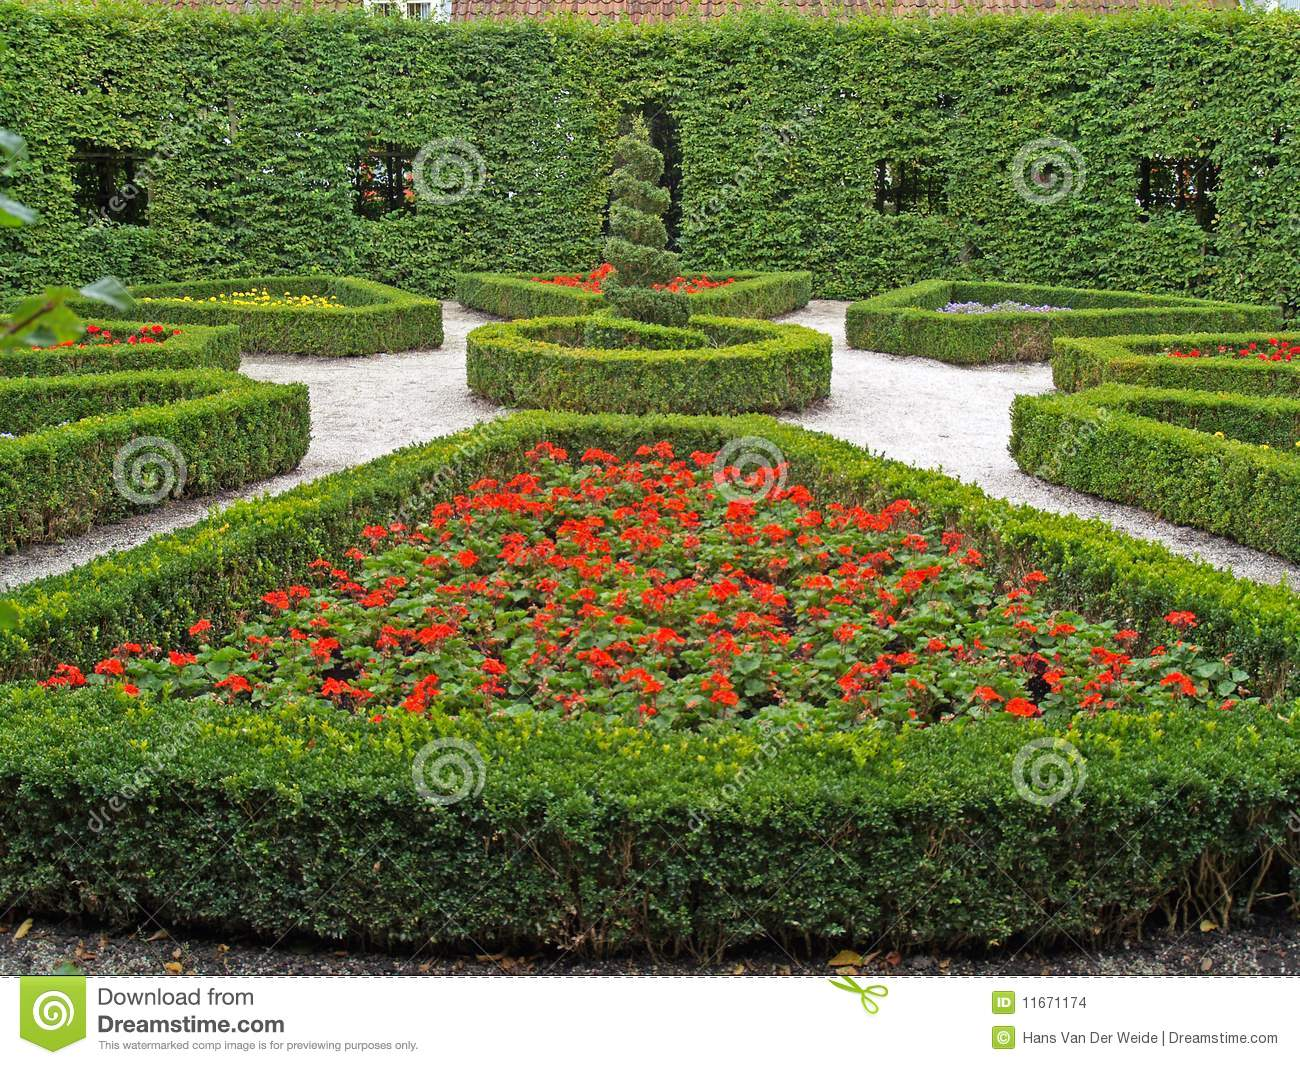 Jardin public de conception images stock image 11671174 for Jardin public